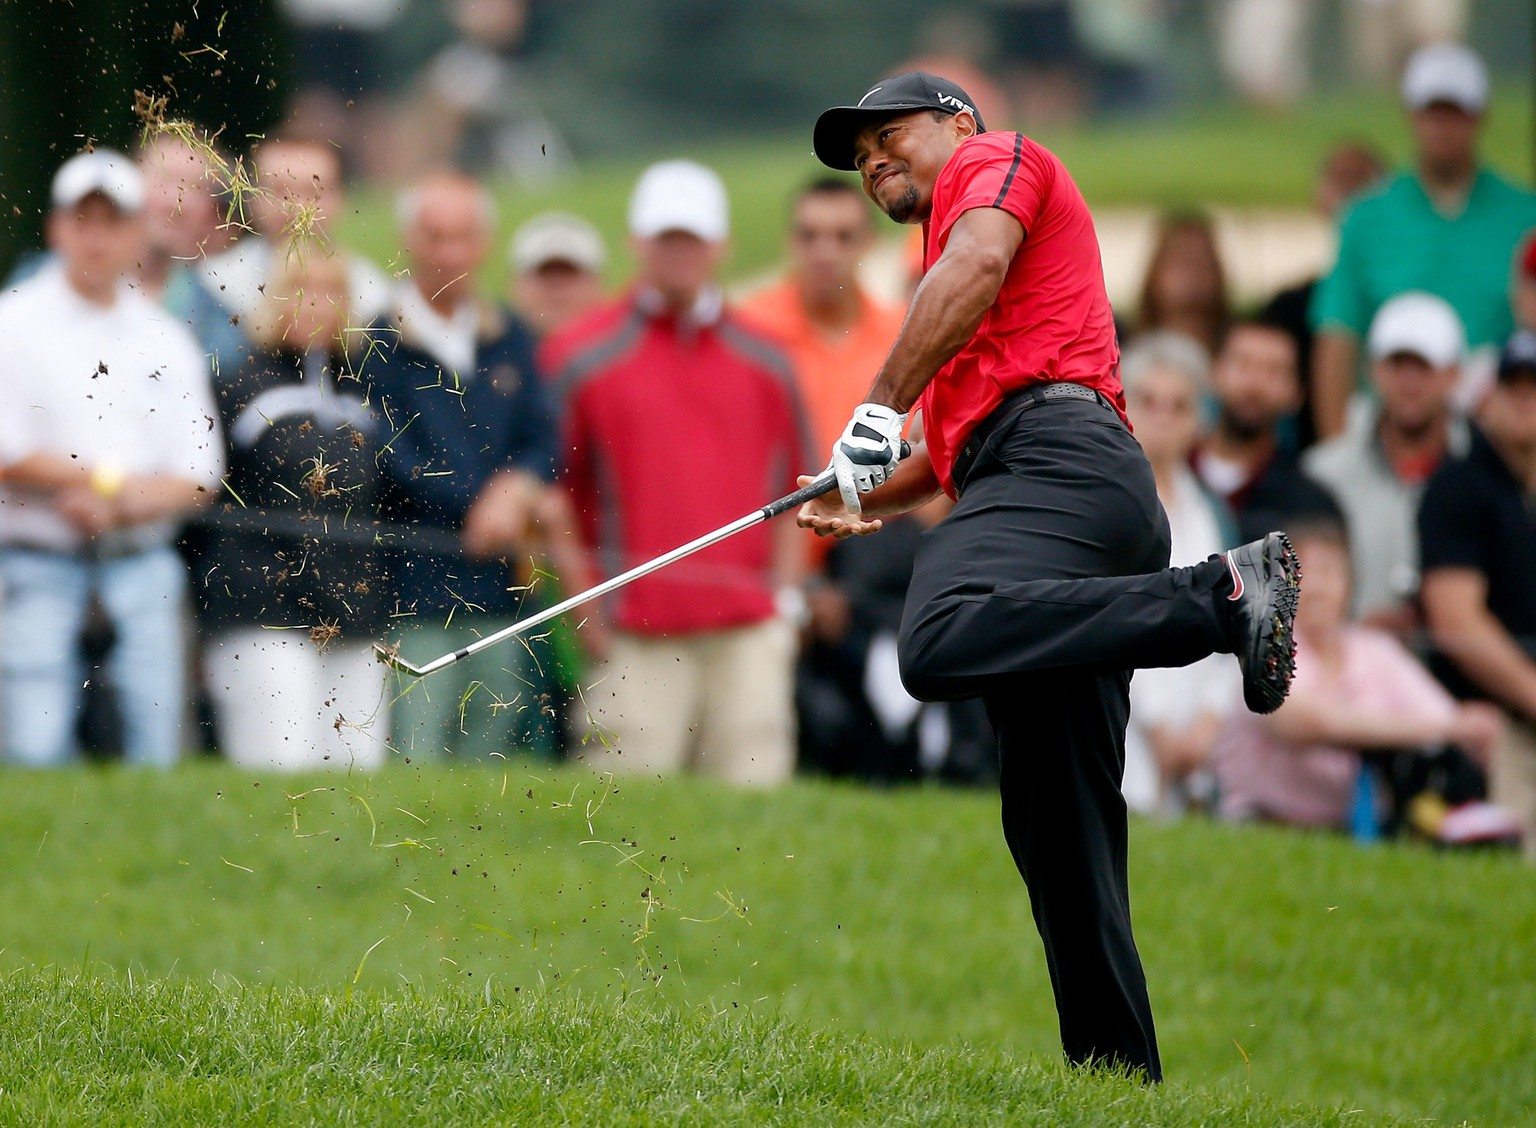 AKRON, OH - AUGUST 03: Tiger Woods hits out of the rough on the second hole during the final round of the World Golf Championships-Bridgestone Invitational at Firestone Country Club South Course on August 3, 2014 in Akron, Ohio.   Gregory Shamus/Getty Images/AFP == FOR NEWSPAPERS, INTERNET, TELCOS & TELEVISION USE ONLY ==